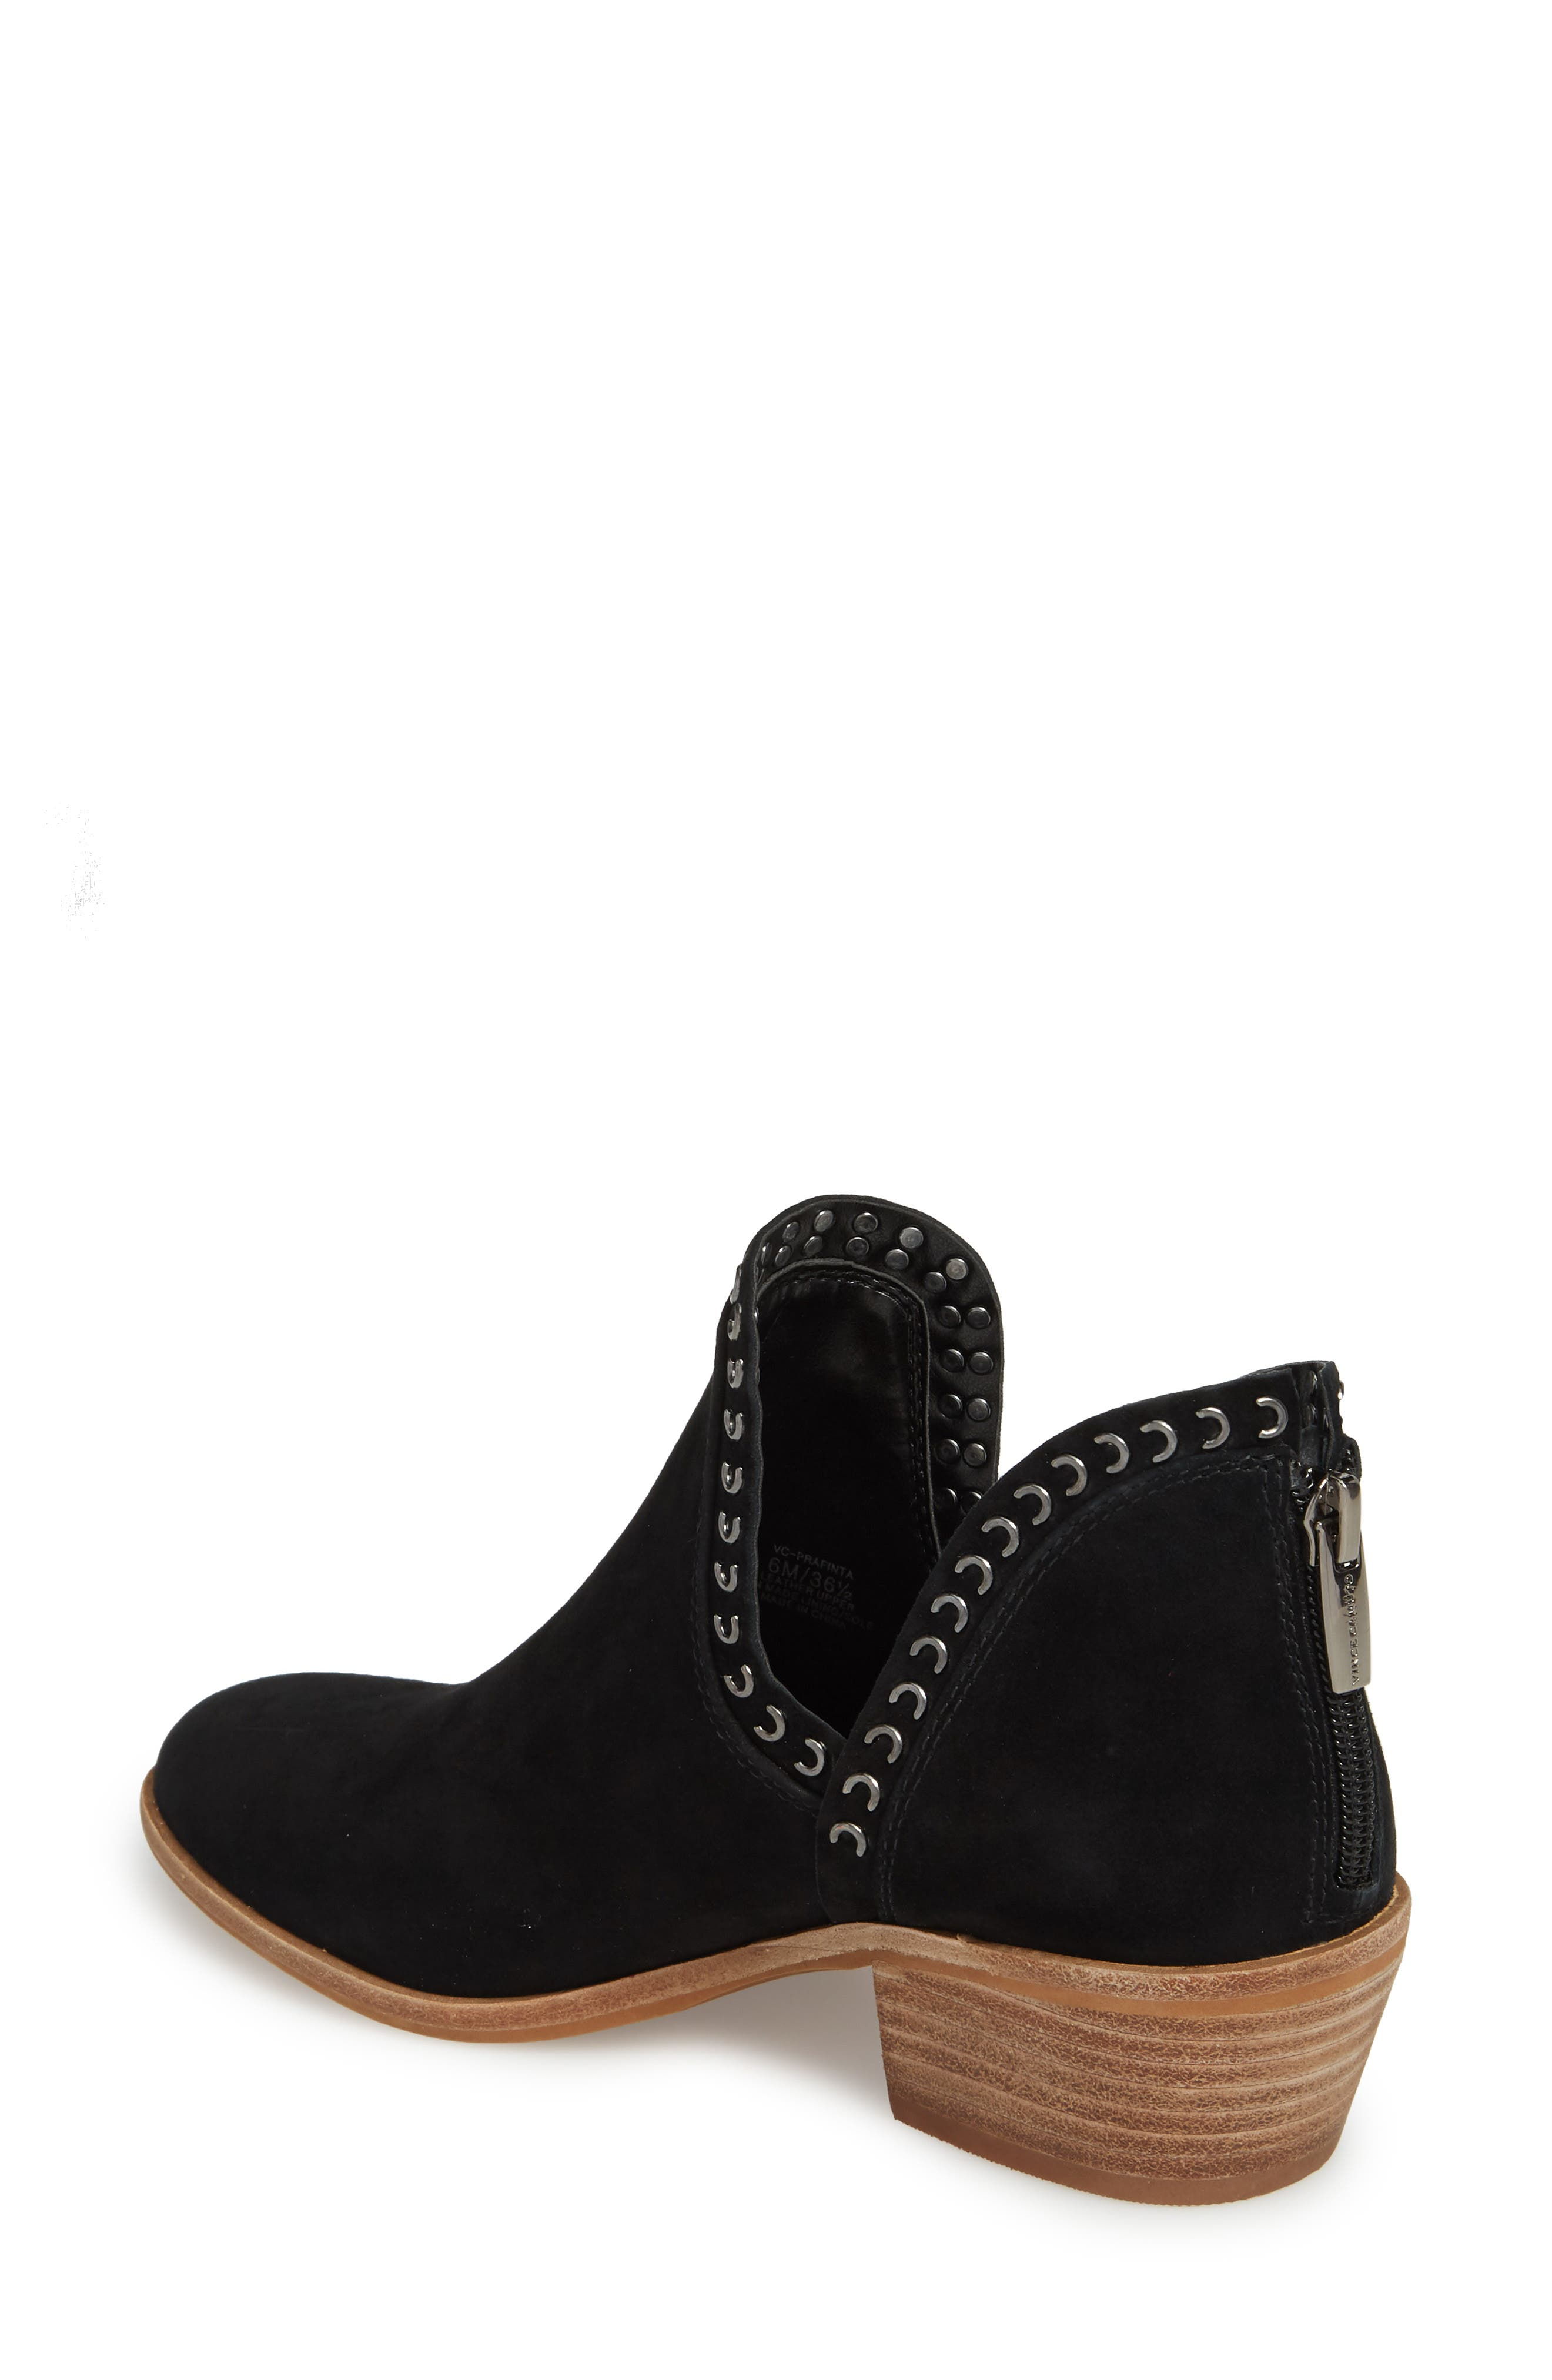 VINCE CAMUTO, Prafinta Boot, Alternate thumbnail 2, color, BLACK SUEDE